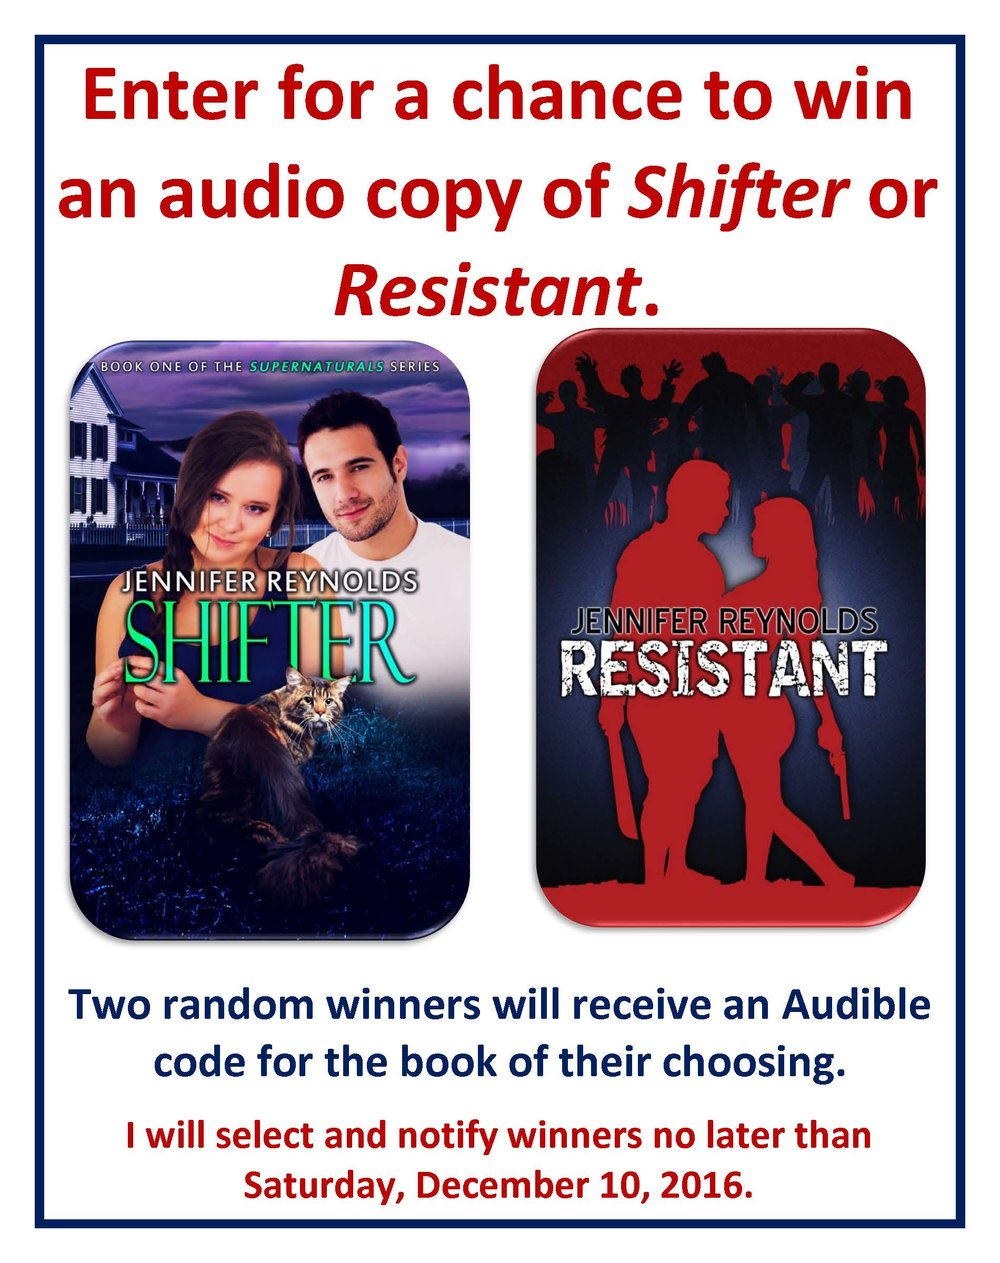 Win an audio copy of Shifter or Resistant.jpg